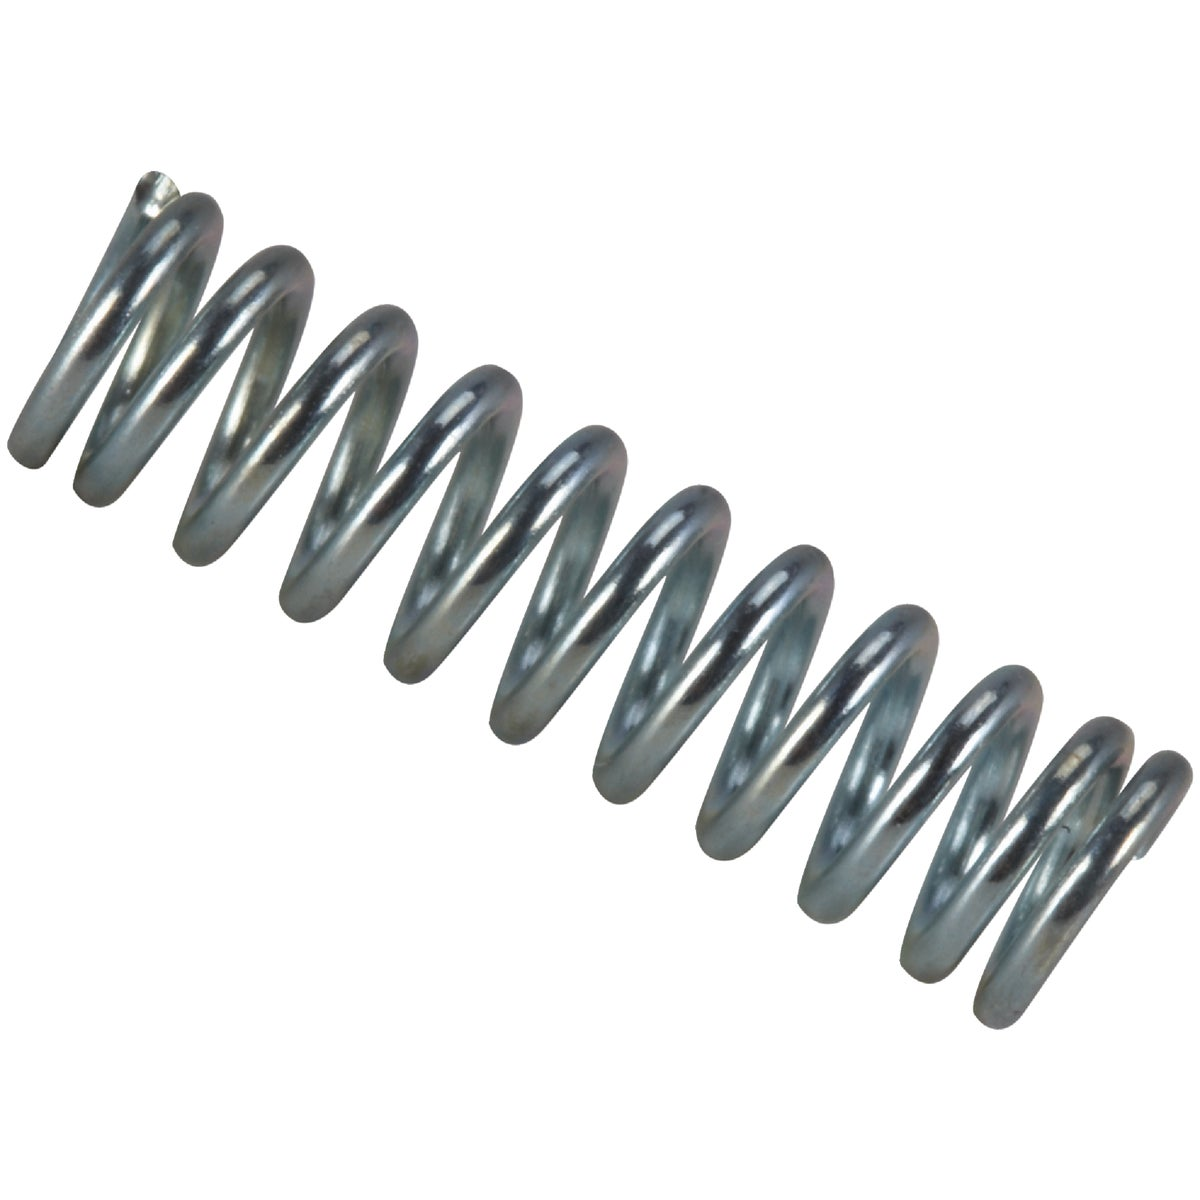 COMPRESSION SPRING - C-806 by Century Spring Corp